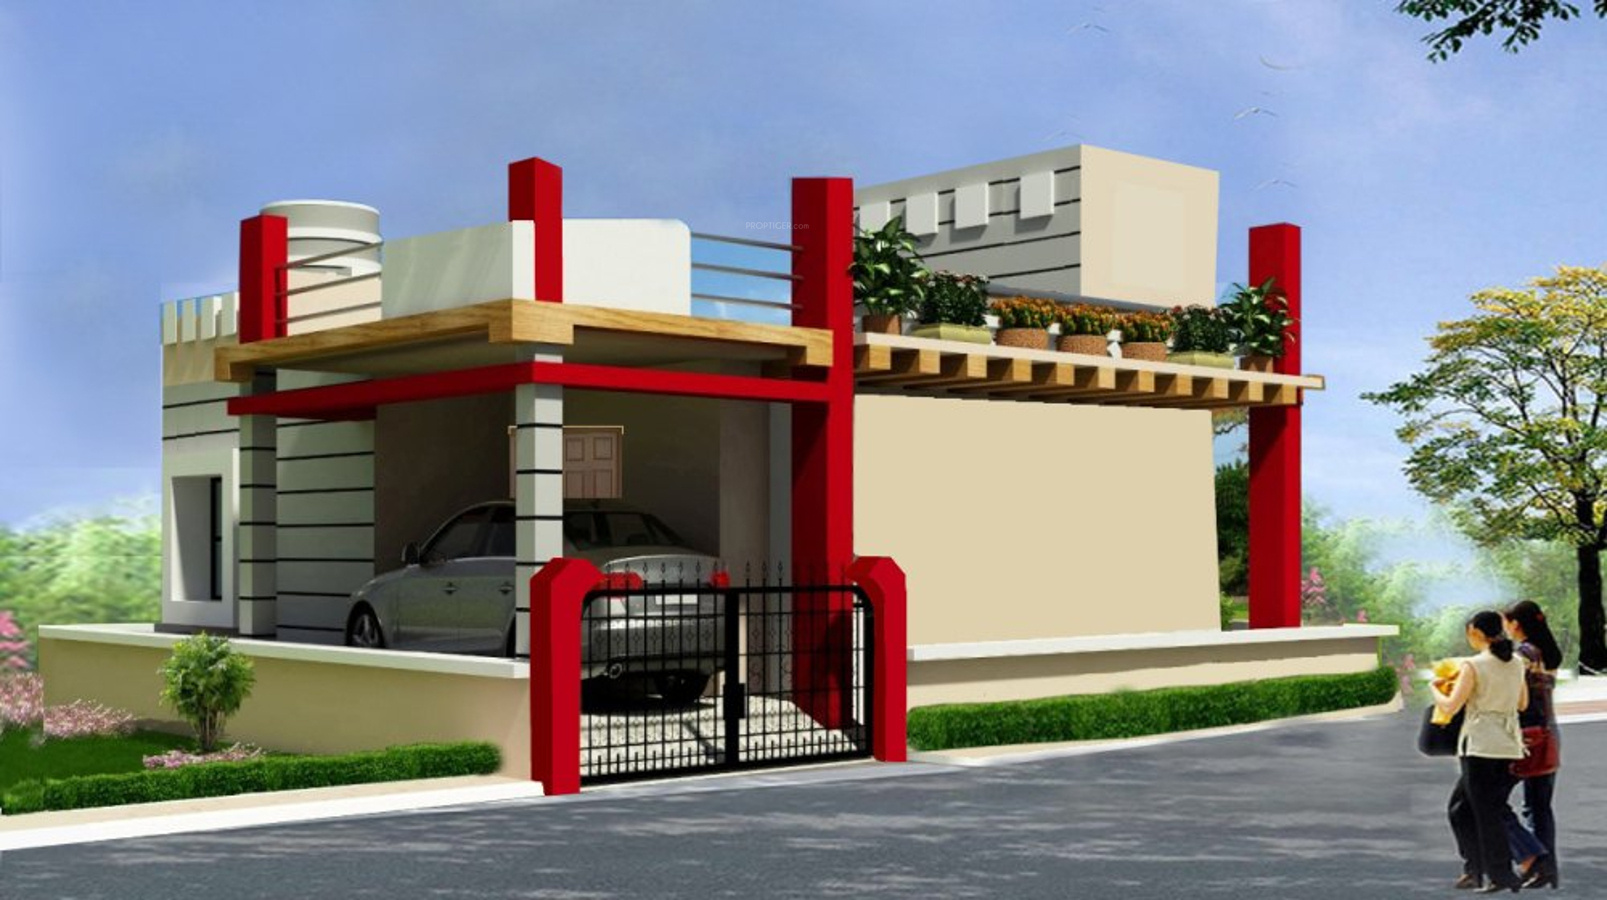 Independent House in Bhubaneswar Central - Residential